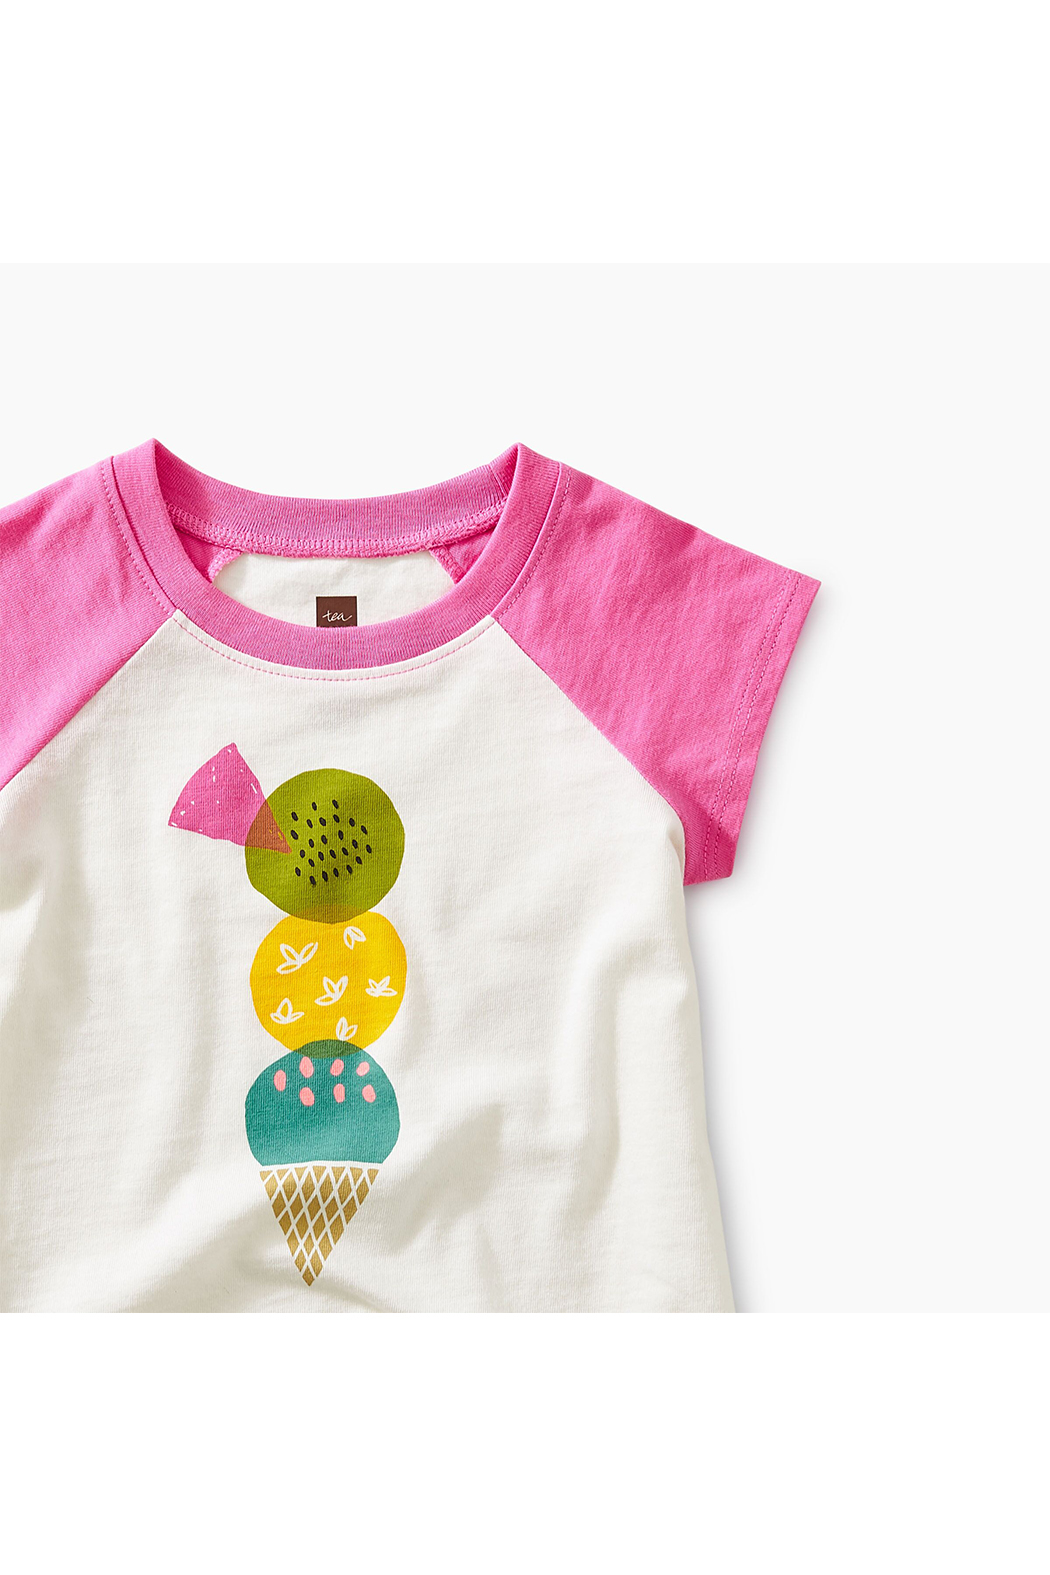 Tea Collection Triple Treat Baby Graphic Tee - Front Full Image